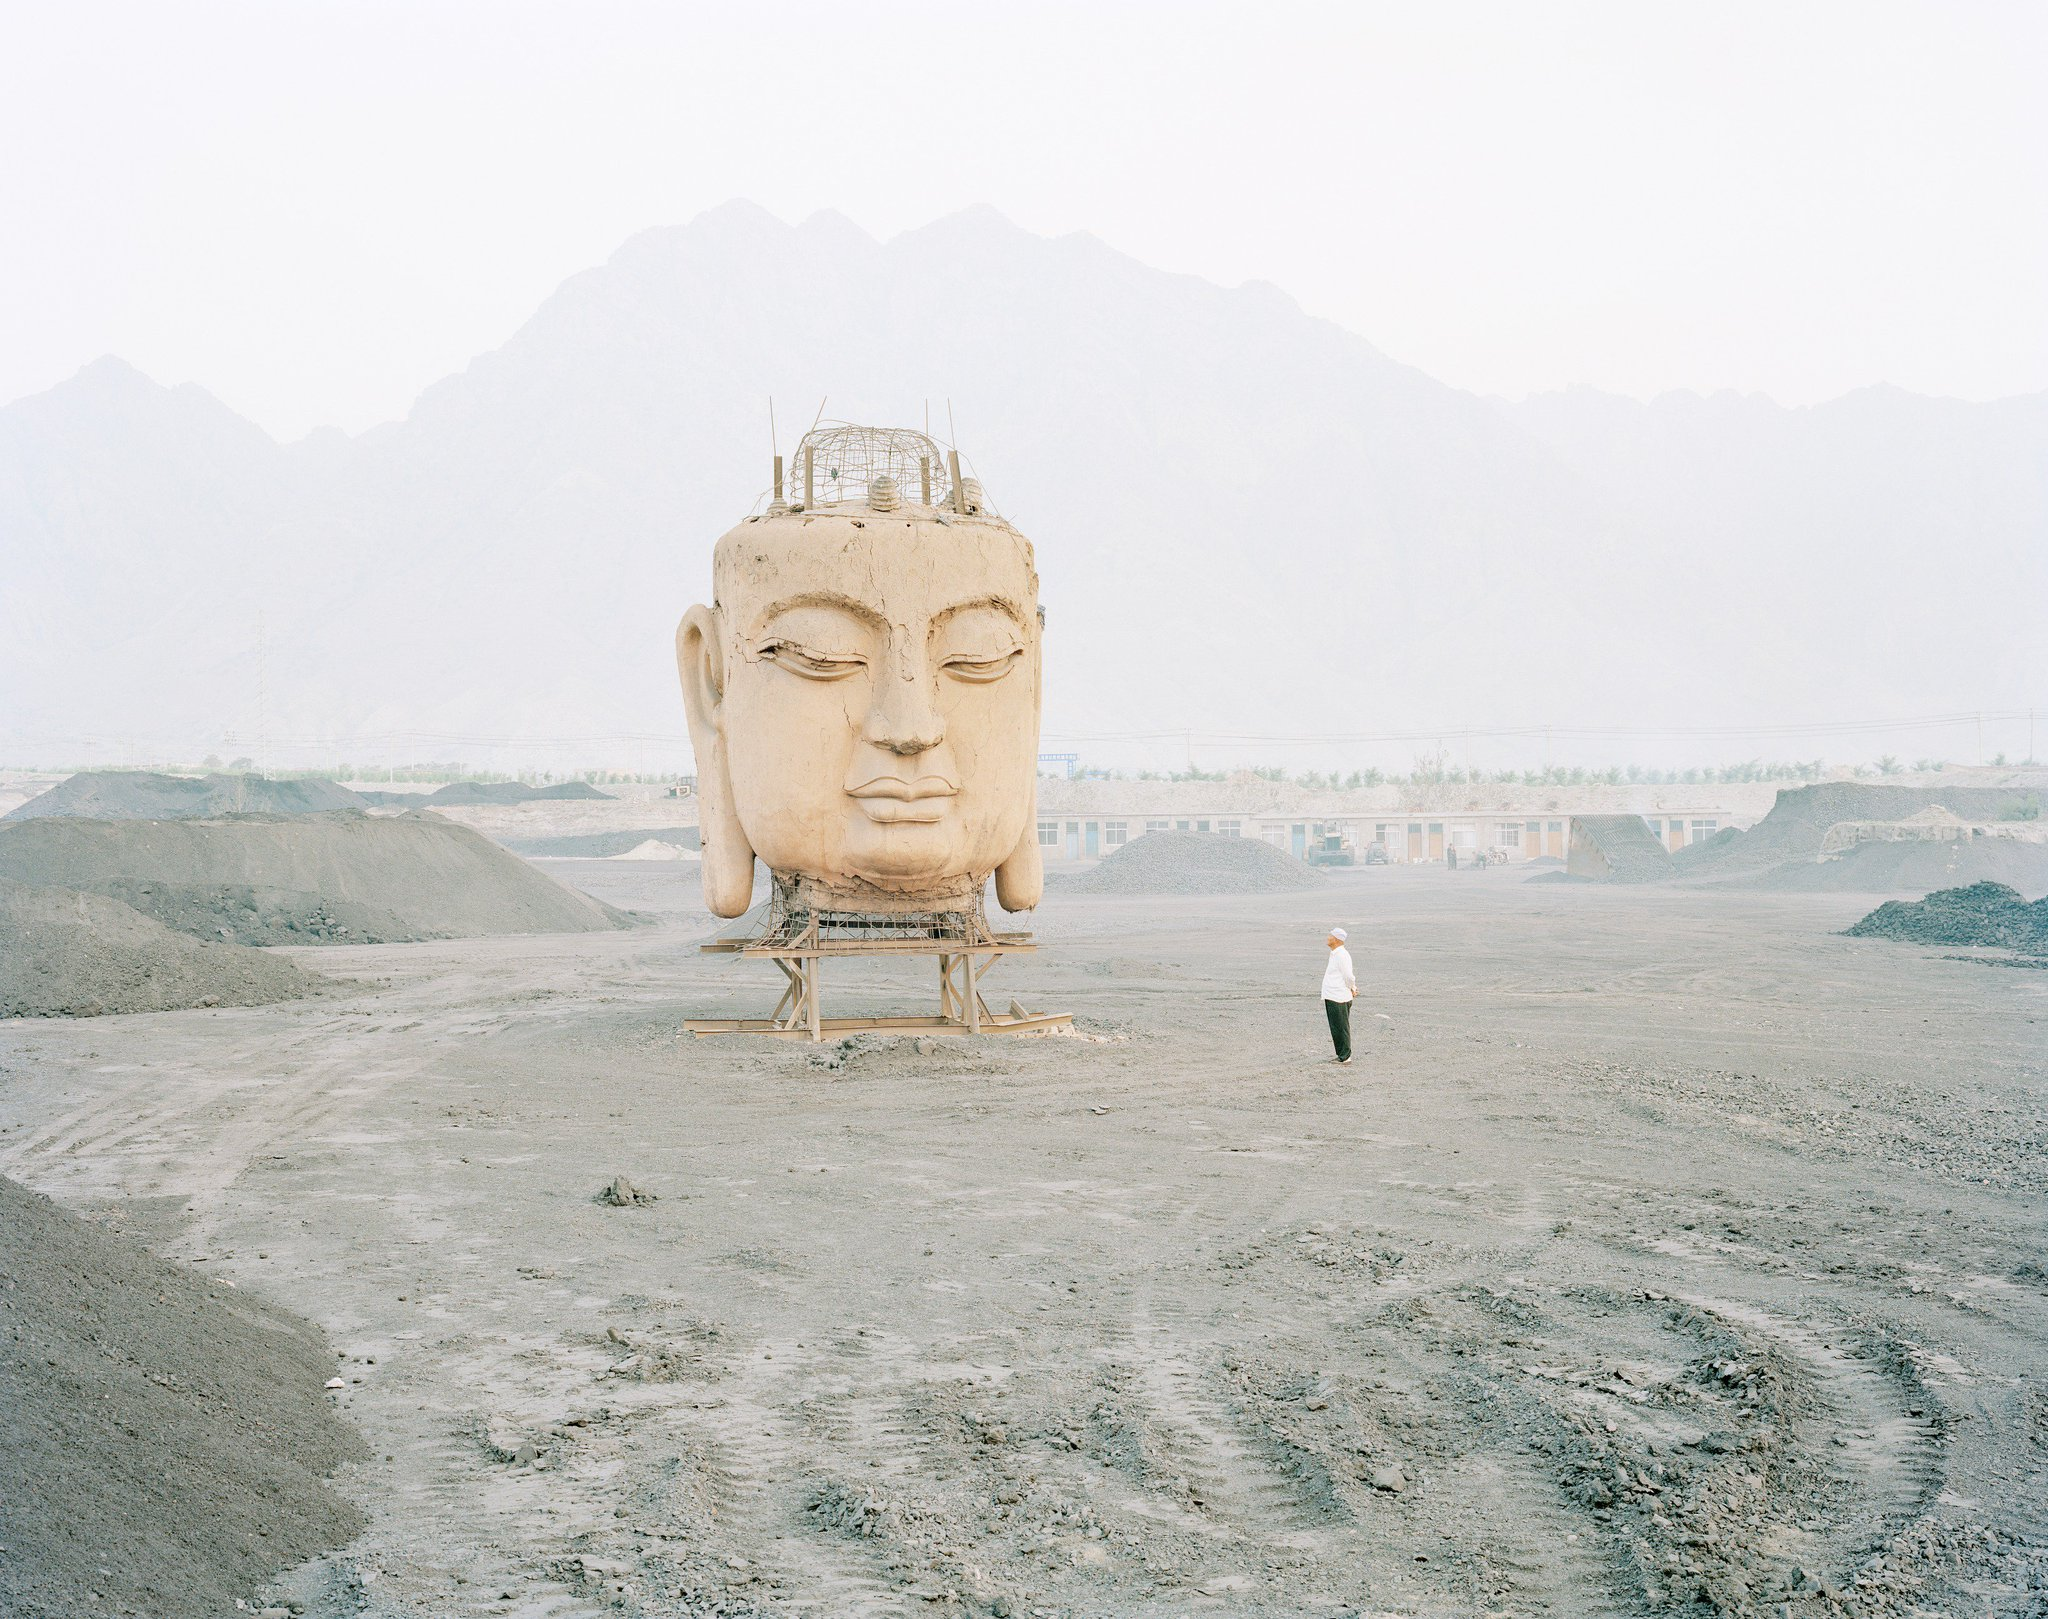 The Yellow River, Zhang Kechun https://t.co/8YONddisGJ